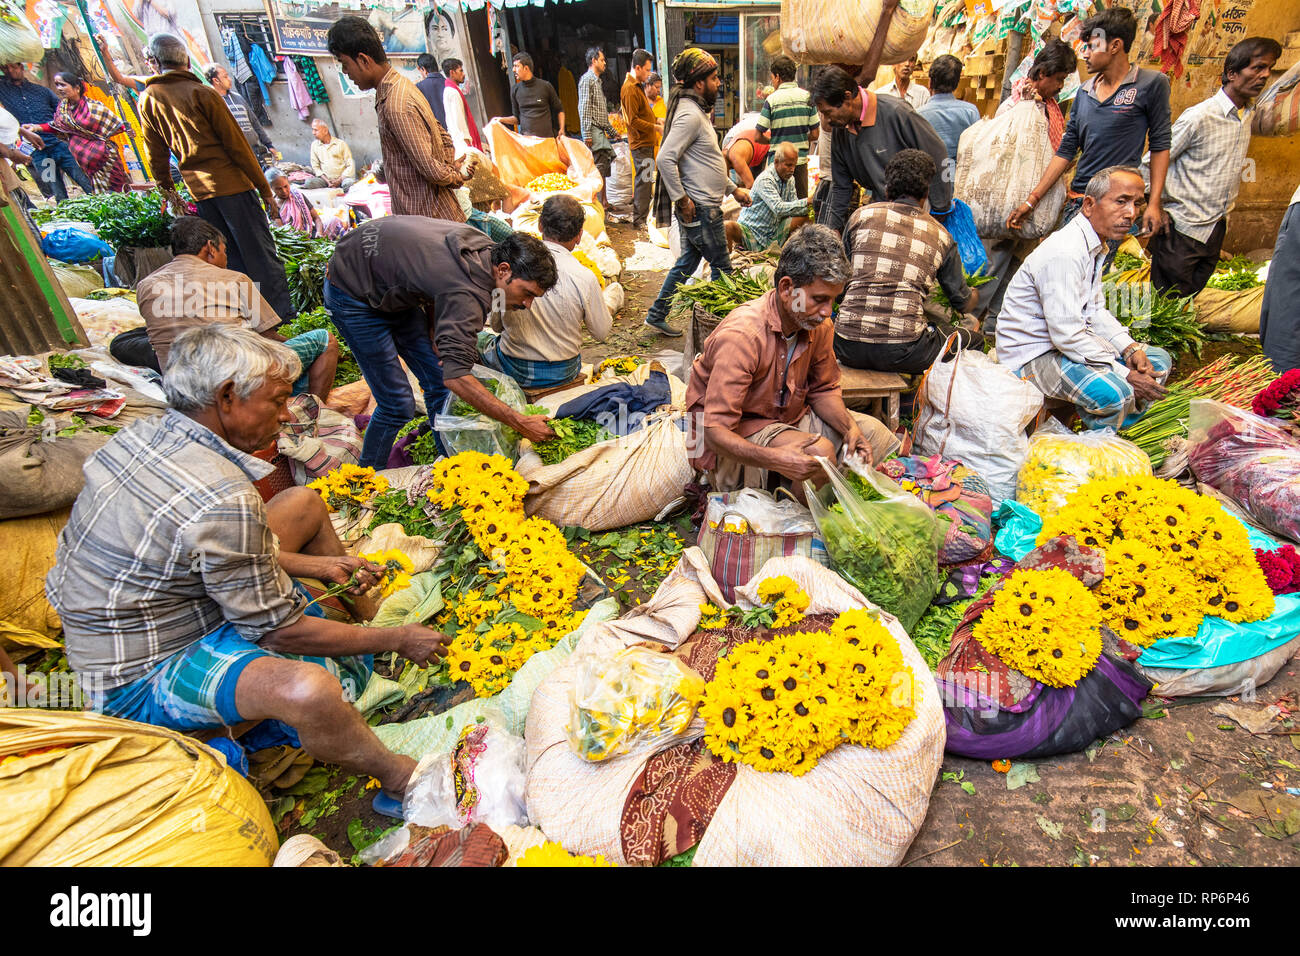 Crowds of local people sellers and buyers showing the hustle and bustle of the Mullick Ghat Flower Market. - Stock Image